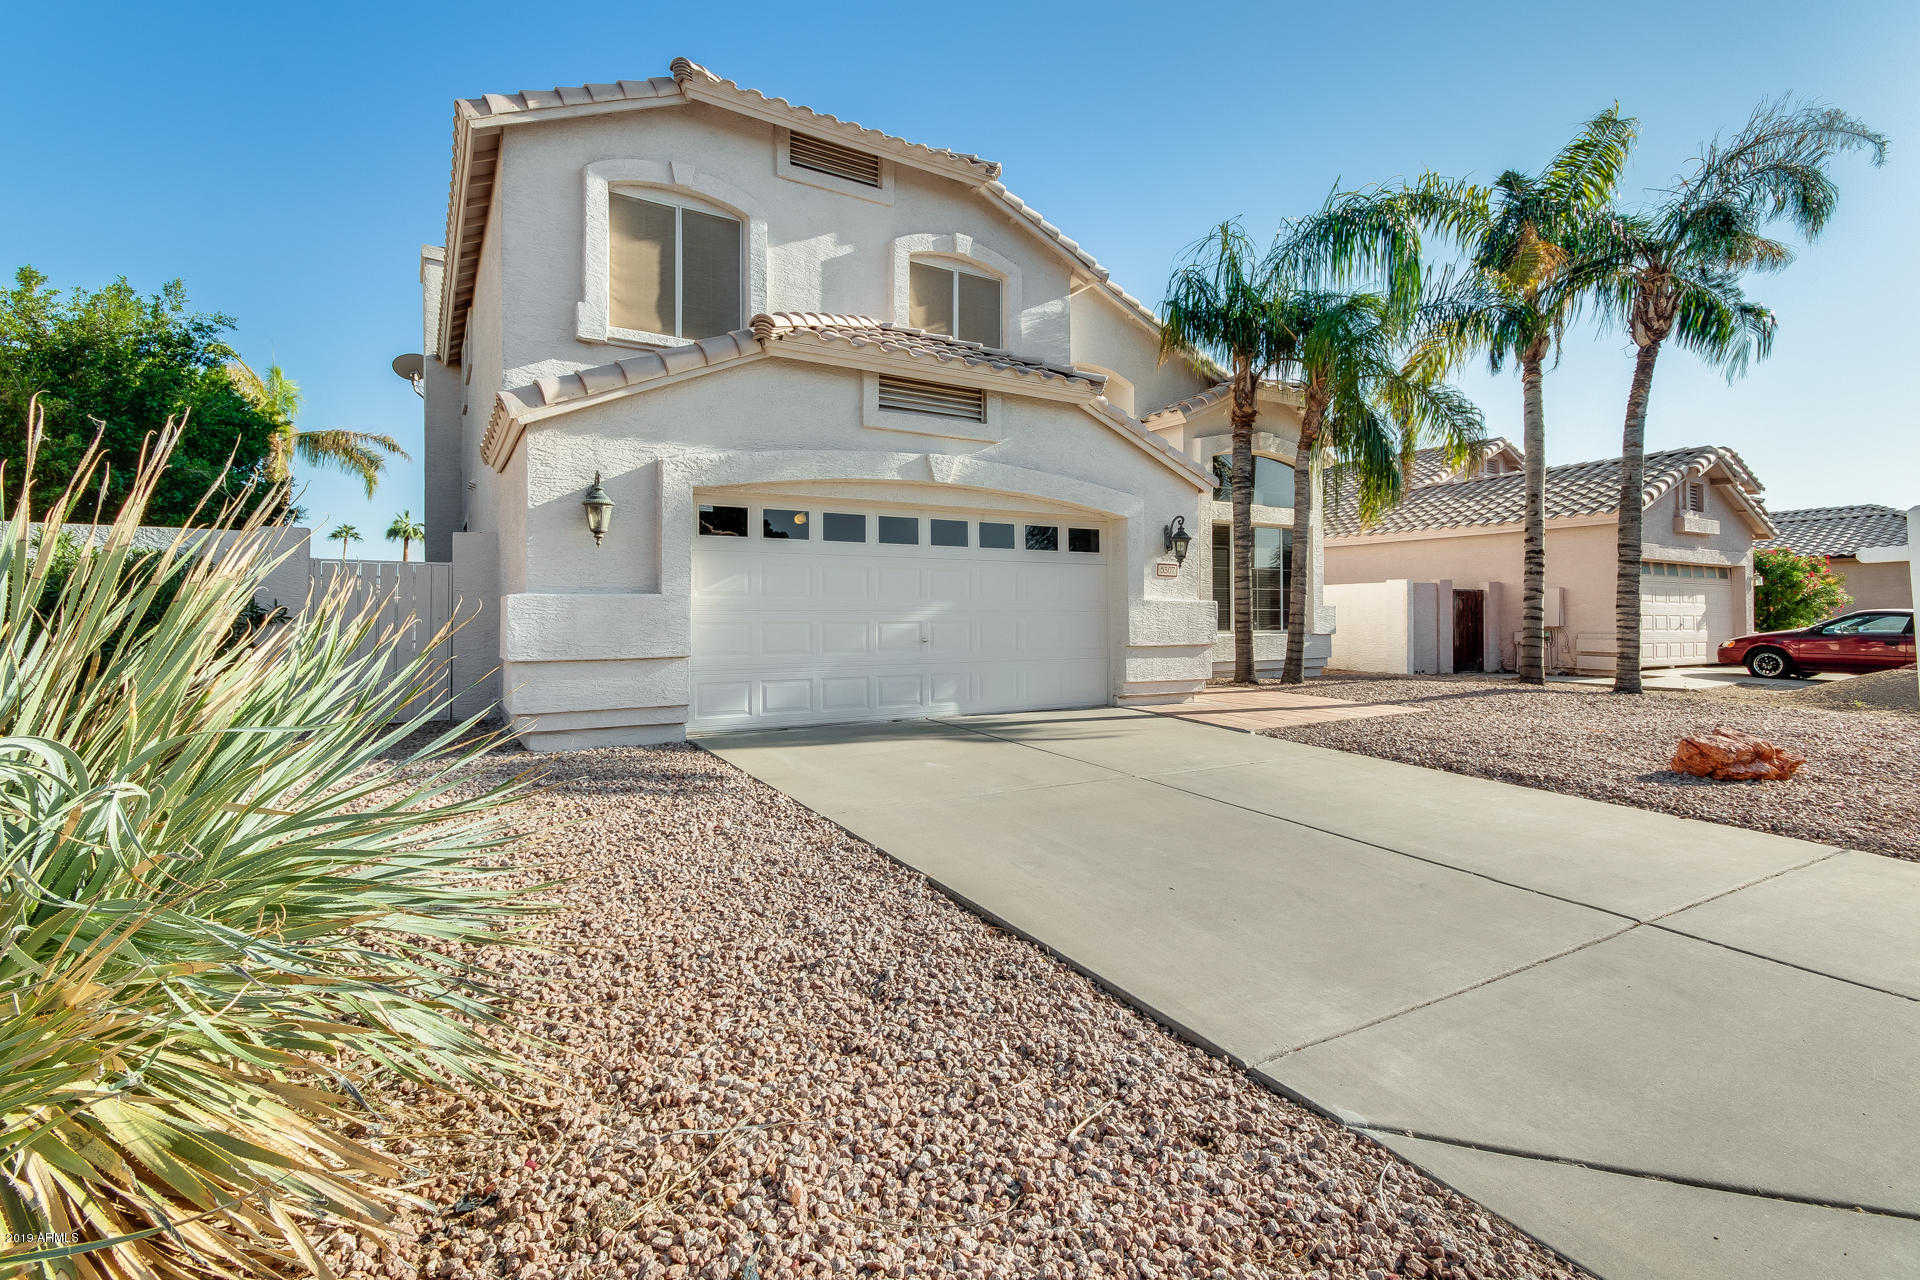 $450,000 - 3Br/3Ba - Home for Sale in Arrowhead Lakes, Glendale